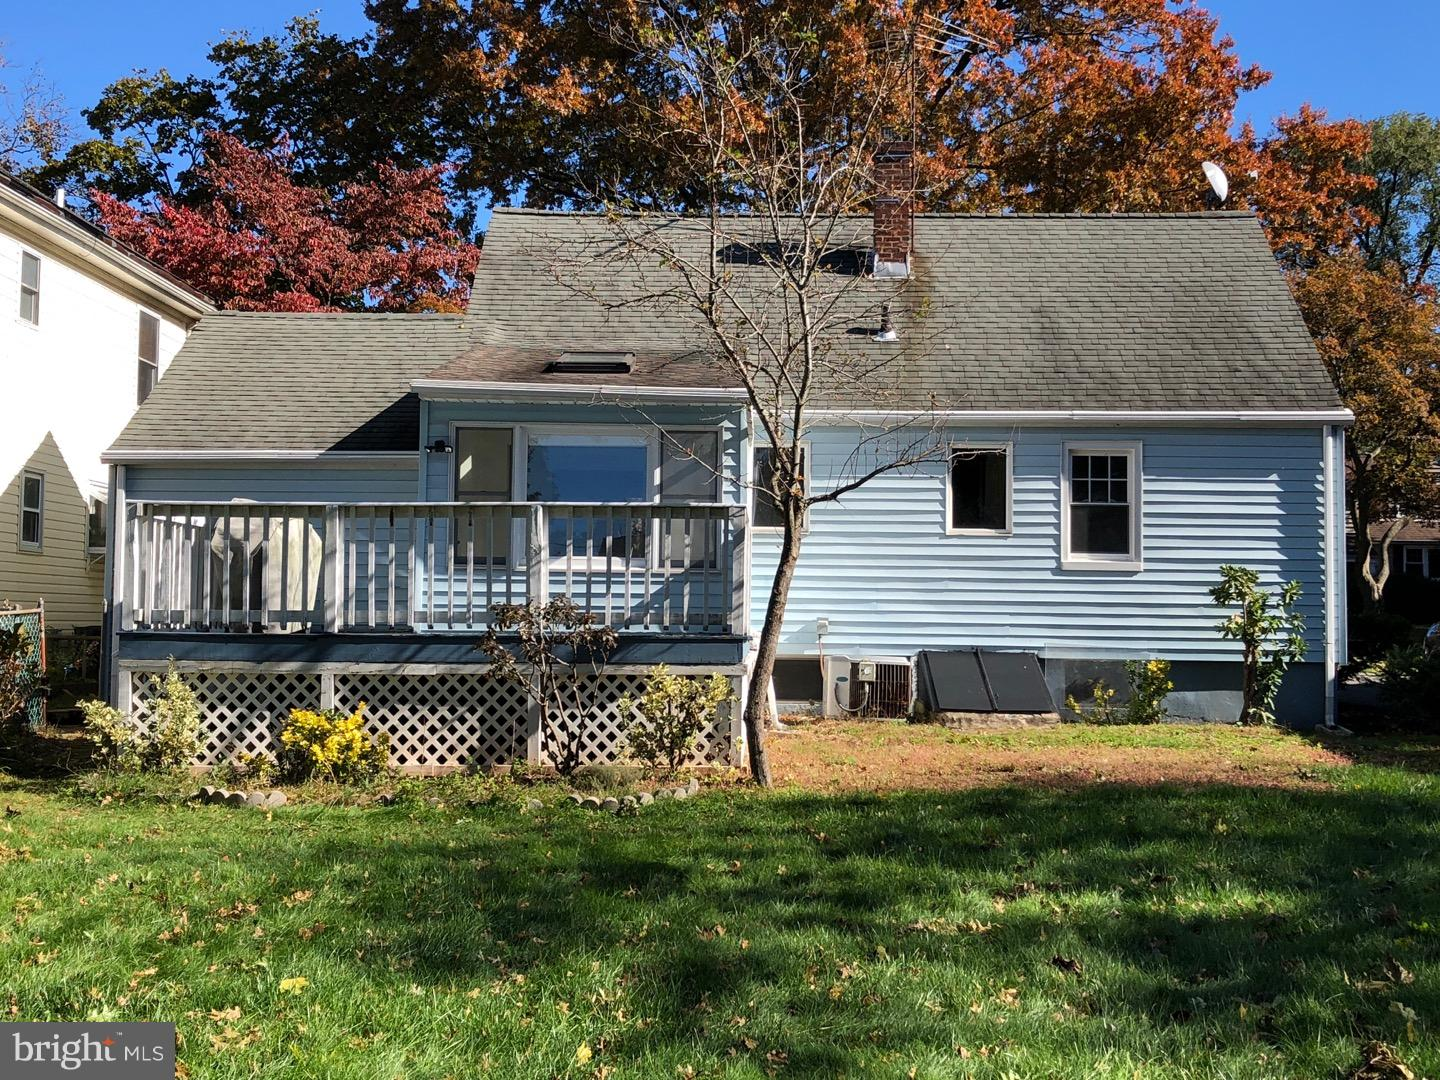 29 SPEAR STREET, METUCHEN, NJ 08840